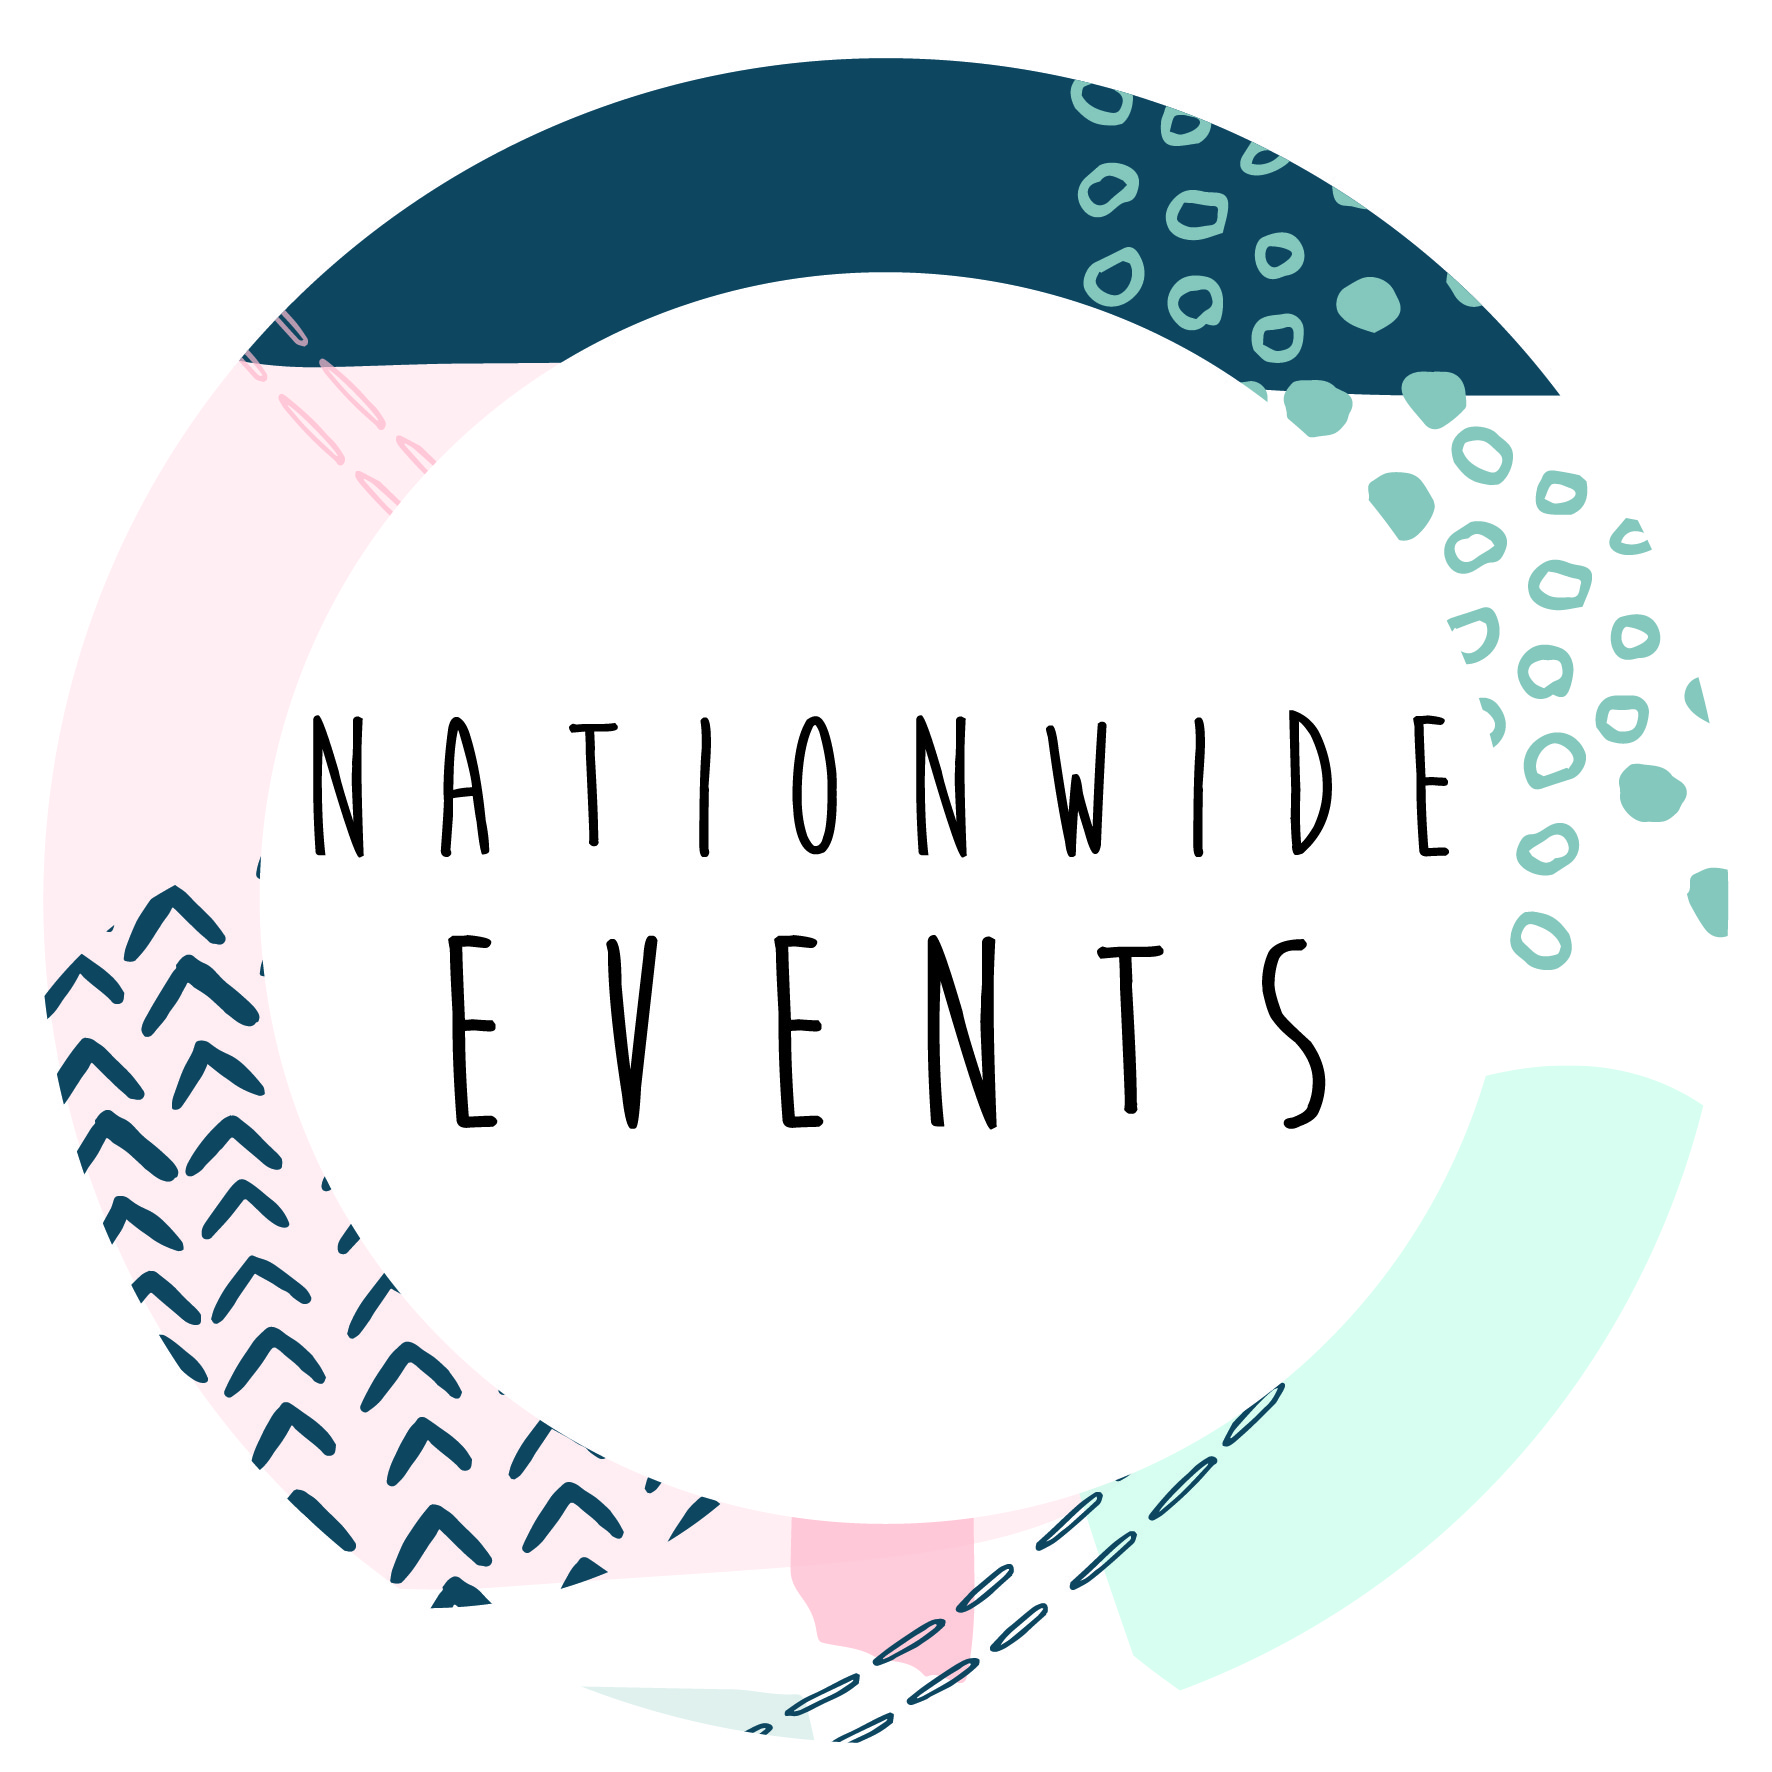 CRAFT PARTIES AND CREATIVE EXPERIENCES NATIONWIDE